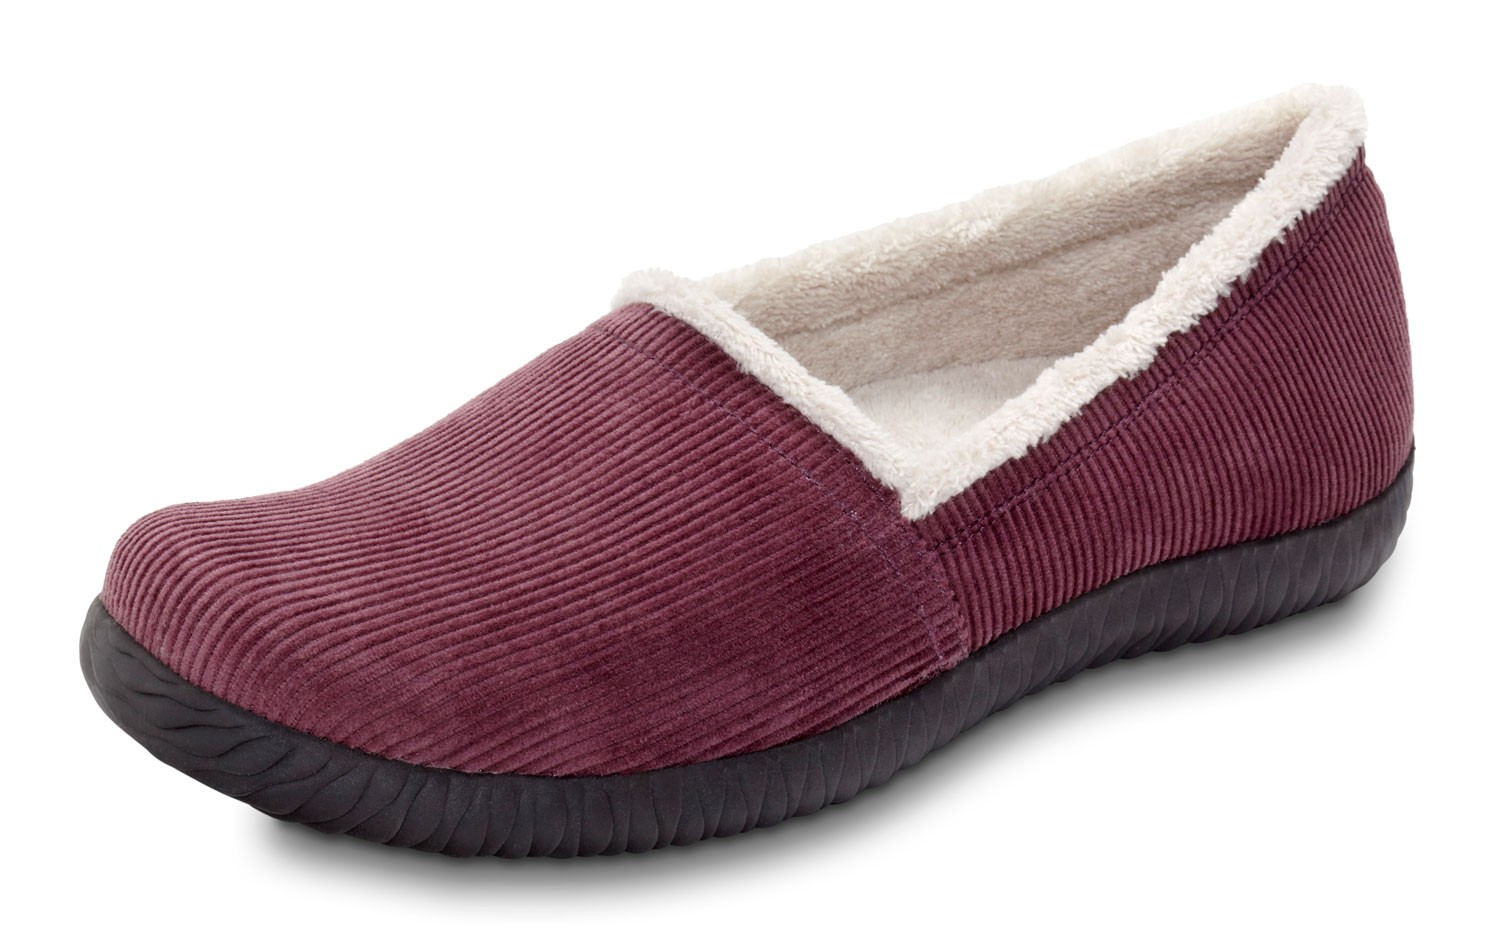 slippers all new slippers for women with arch support ForWomens Bedroom Slippers Arch Support